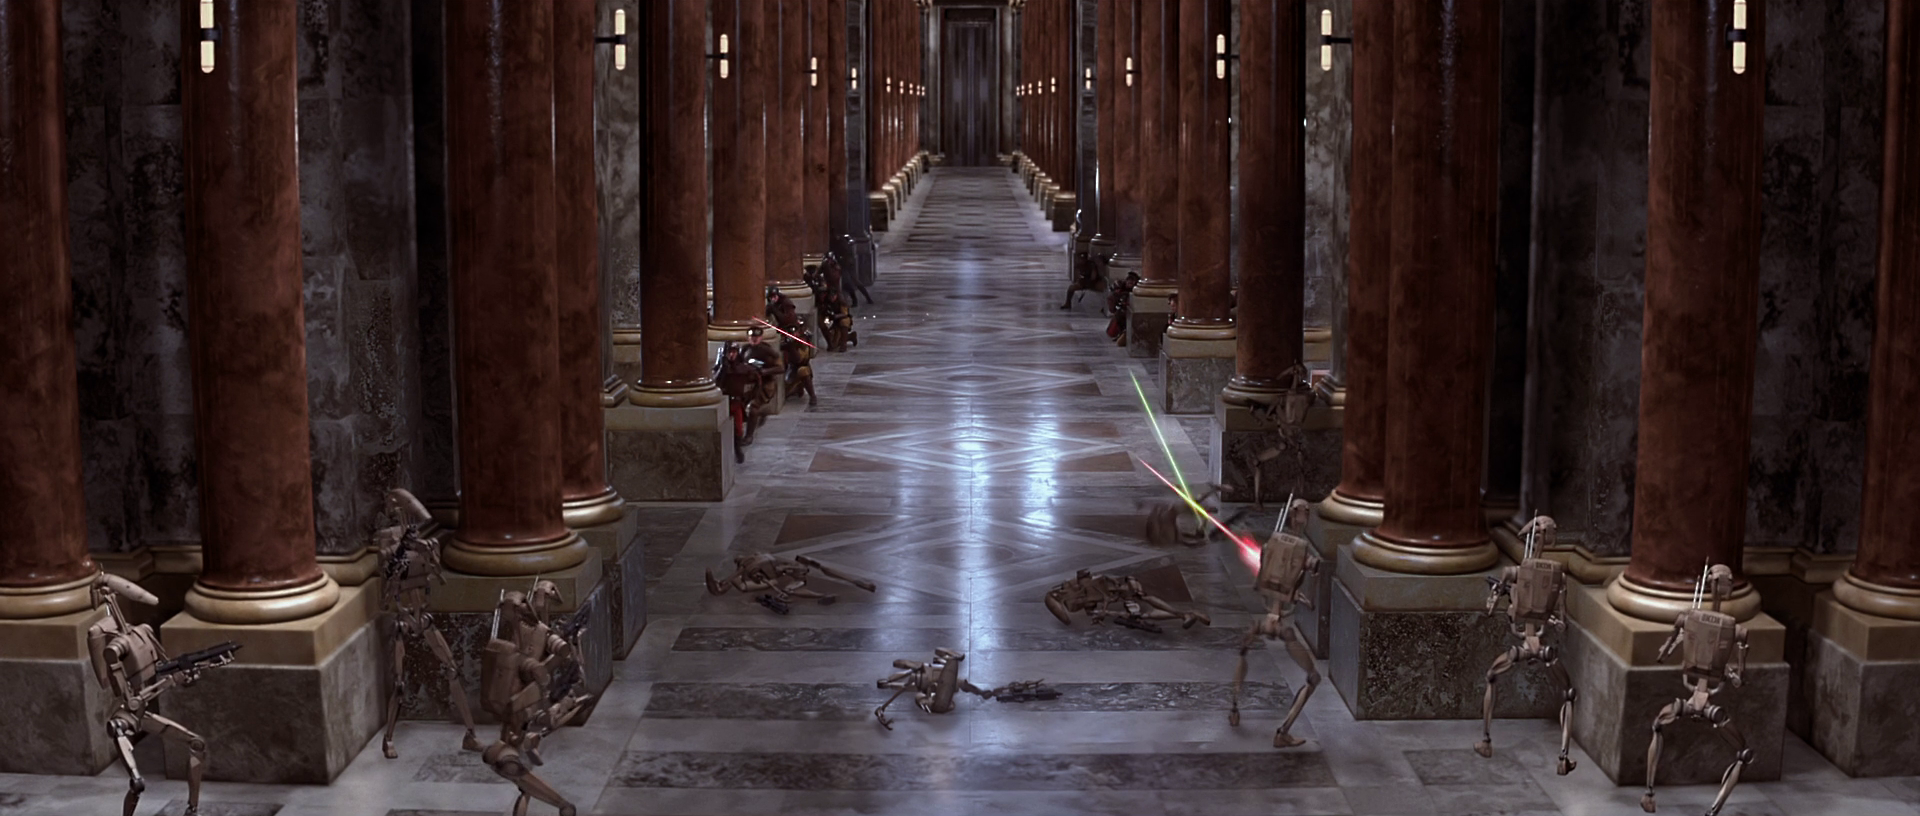 https://vignette.wikia.nocookie.net/starwars/images/3/34/Theed_Palace_Battle.png/revision/latest?cb=20130118053914